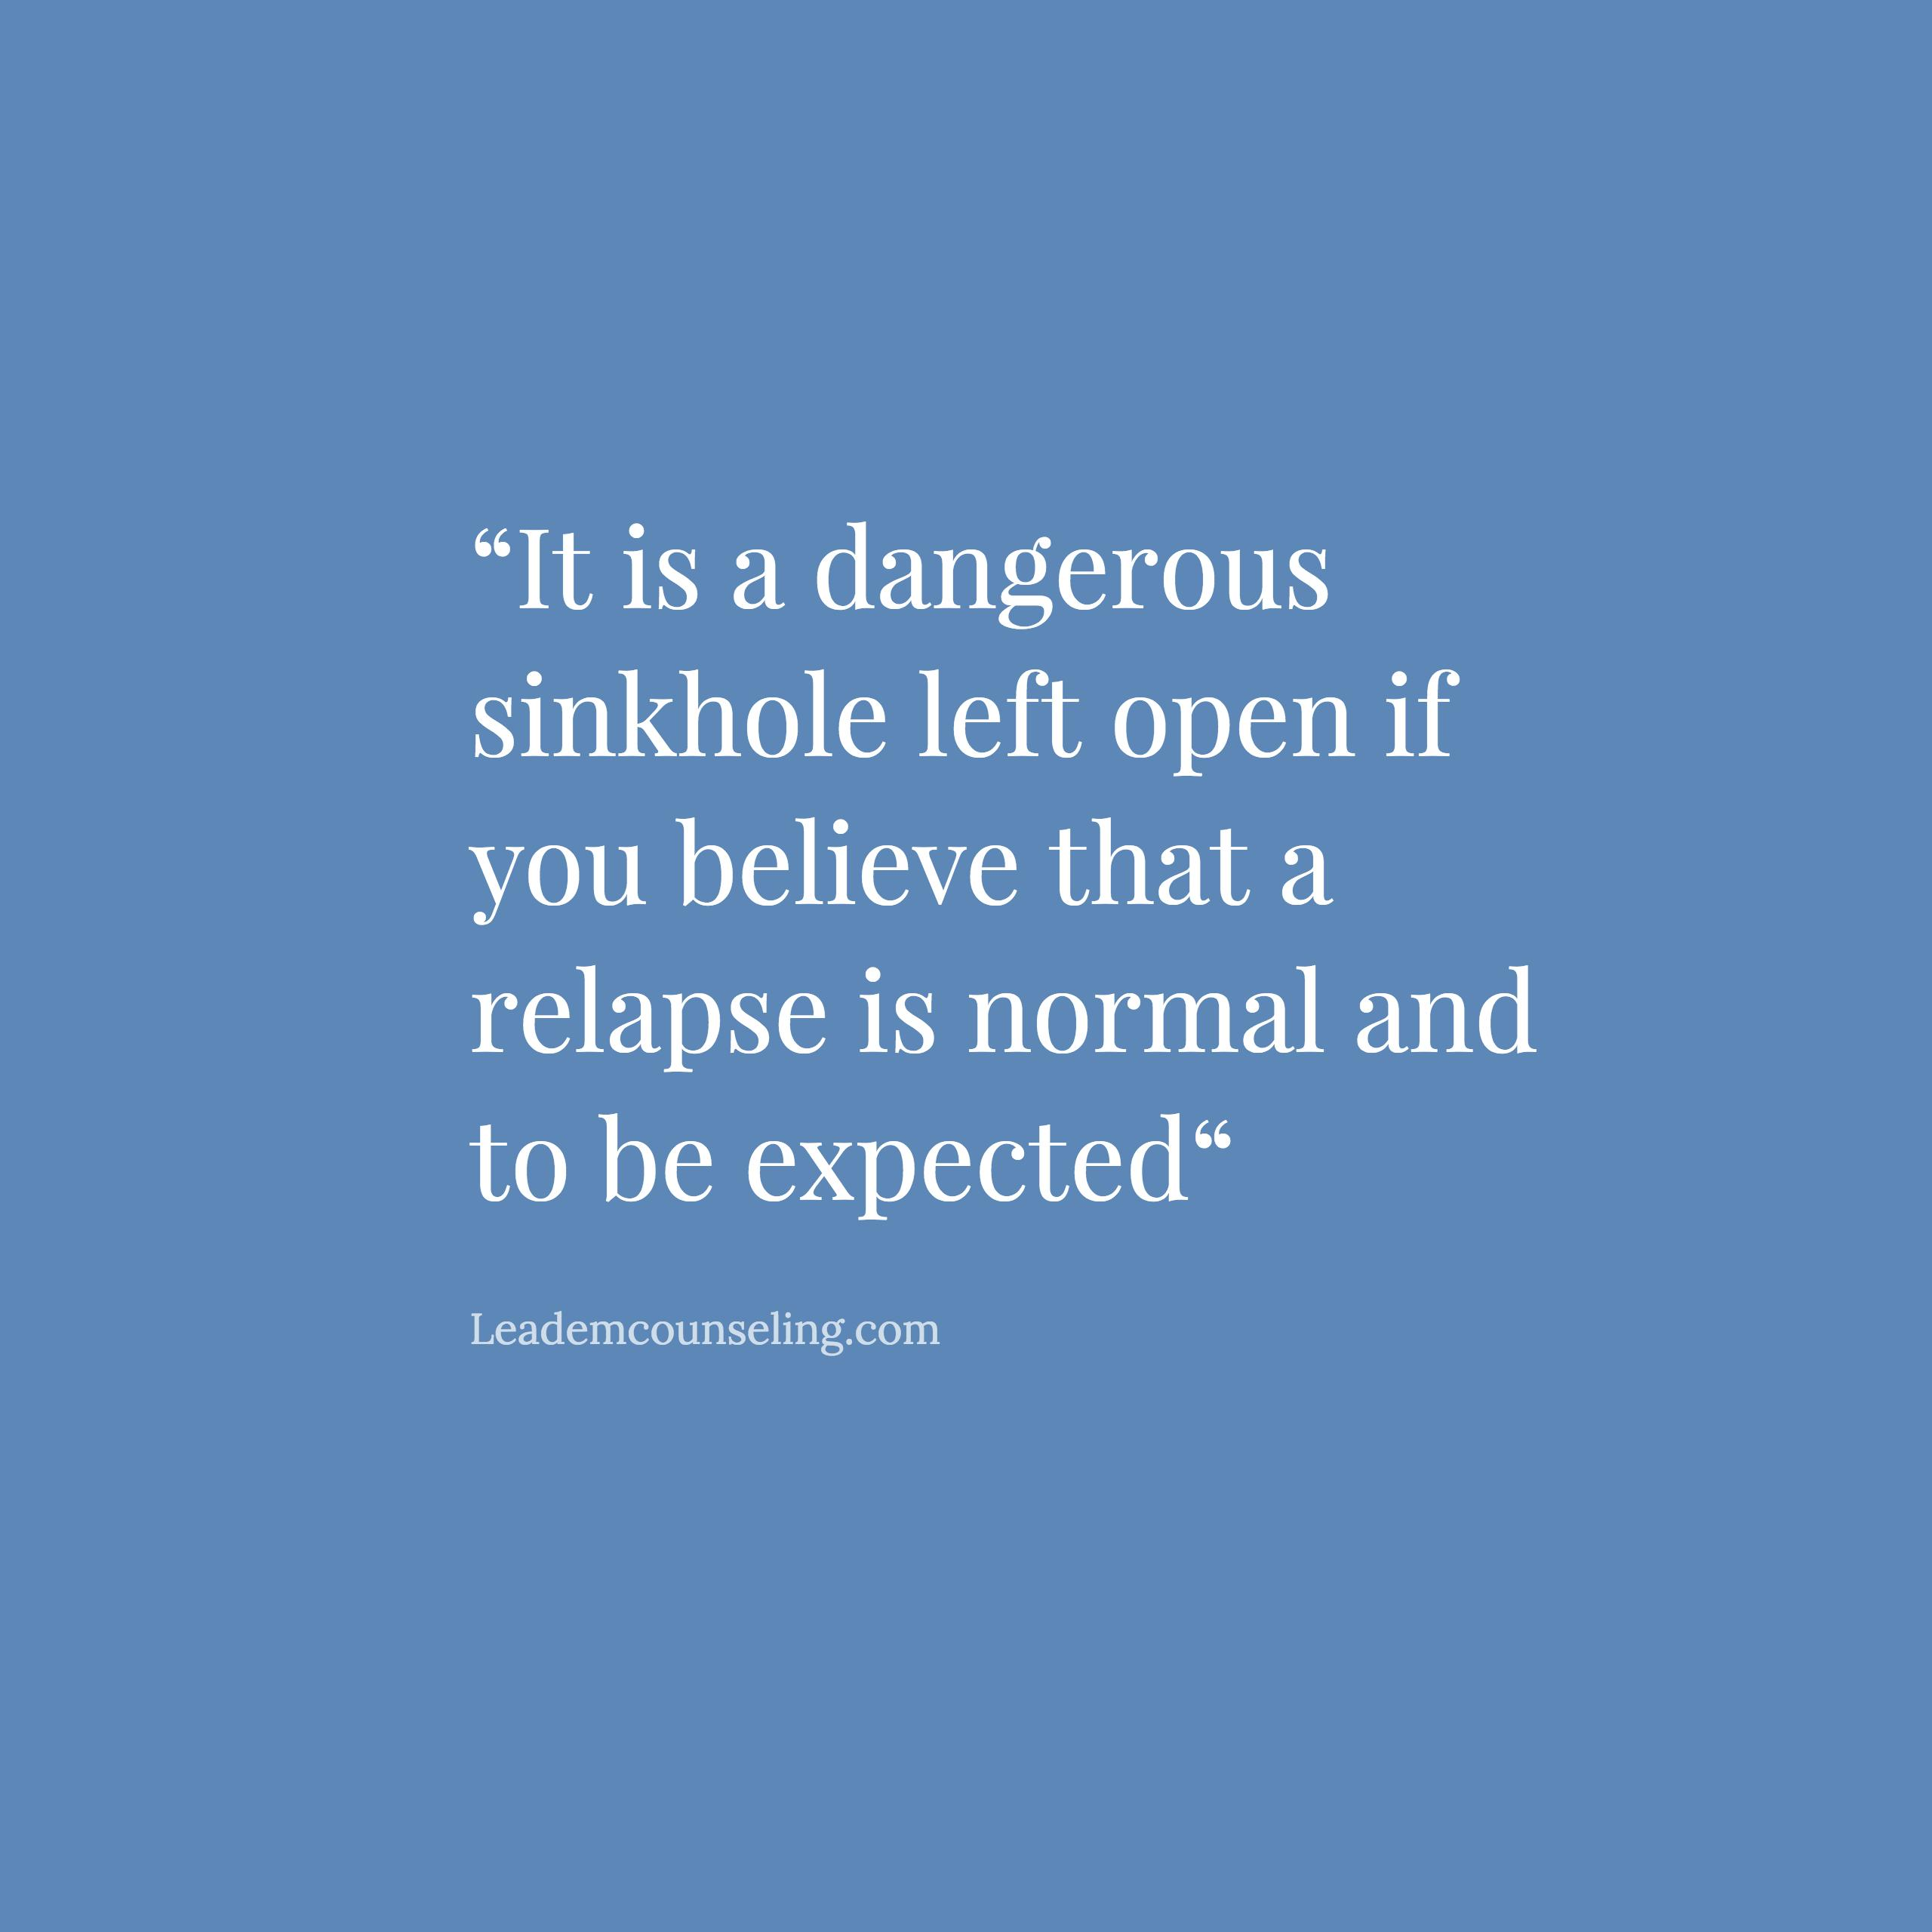 It is a dangerous sinkhole left open if you believe that a relapse is normal and to be expected